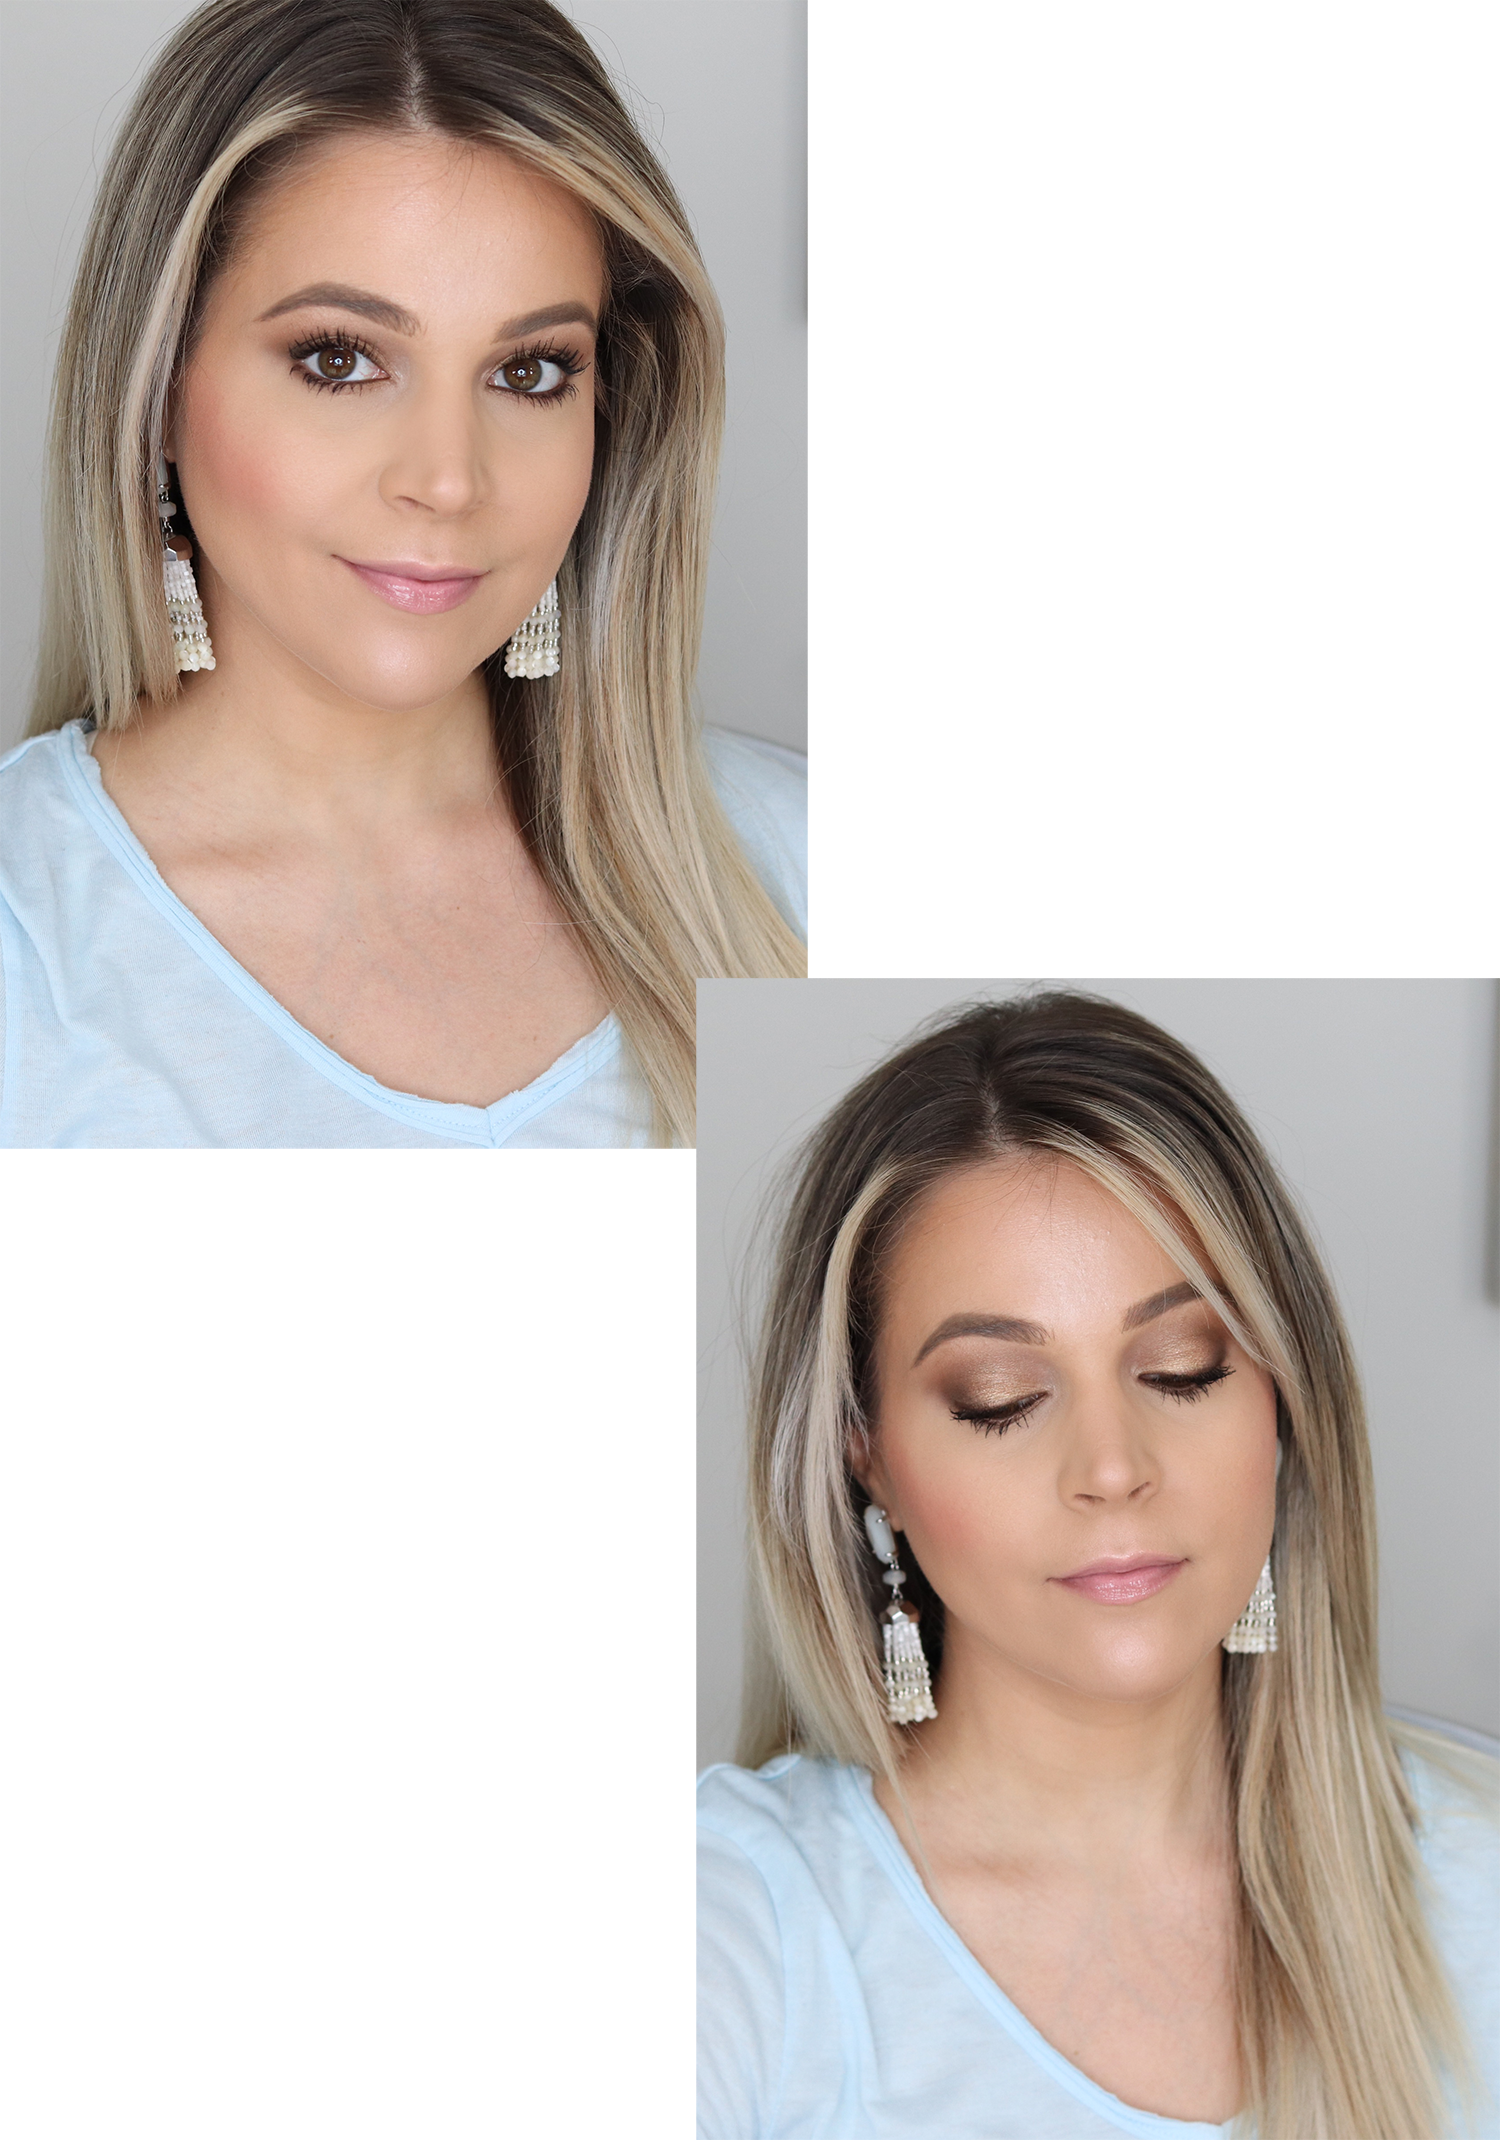 Thrive Causemetics Makeup Look Using Focus Eyeshadow Palette in No. 1, Lash Extensions Mascara and Glossy Lip in Jean | Brighter Darling Beauty Blog